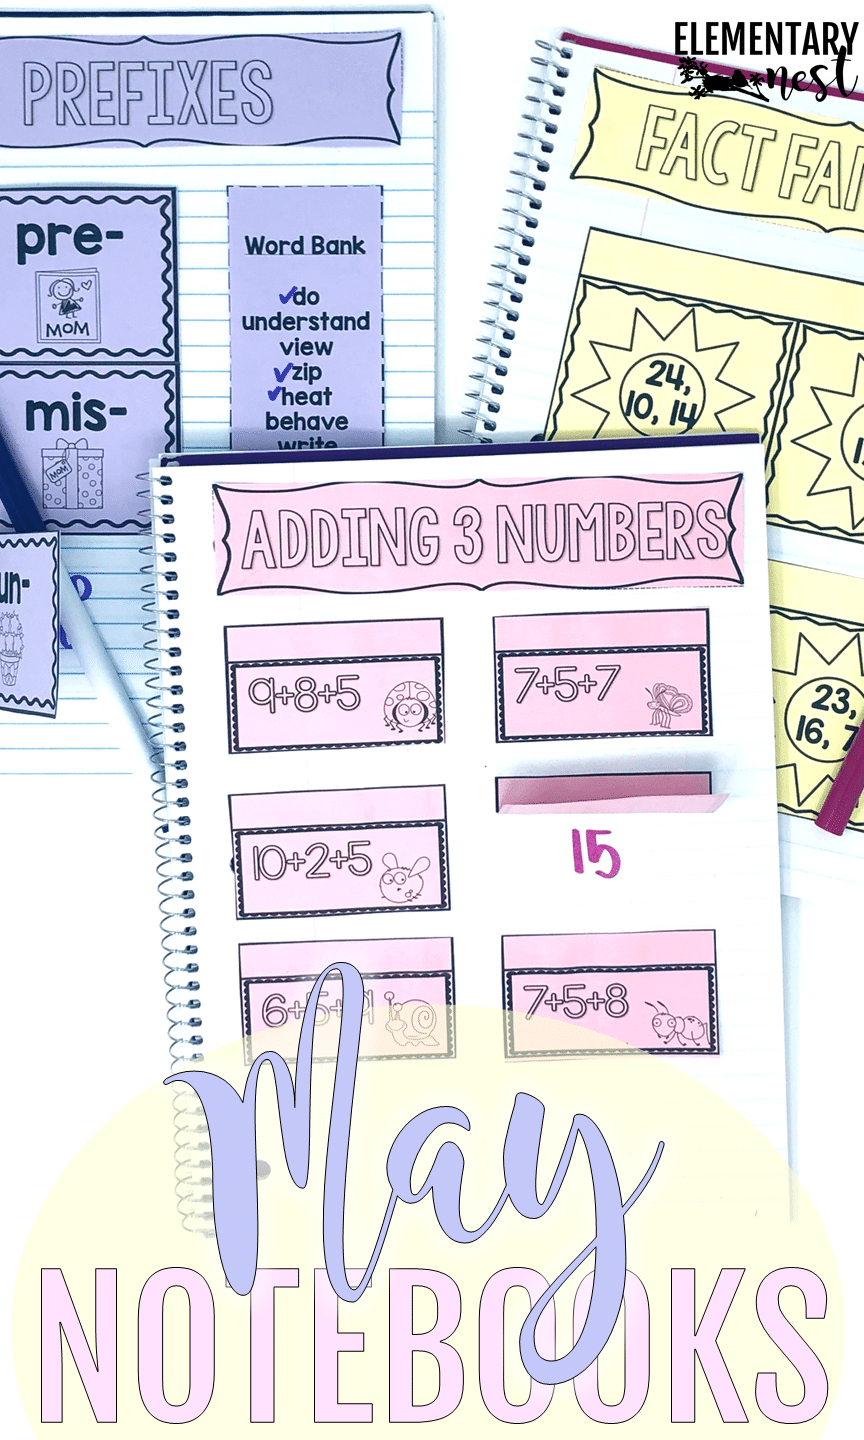 Interactive Notebooks for students to get hands-on practice with ELA skills and math skills.